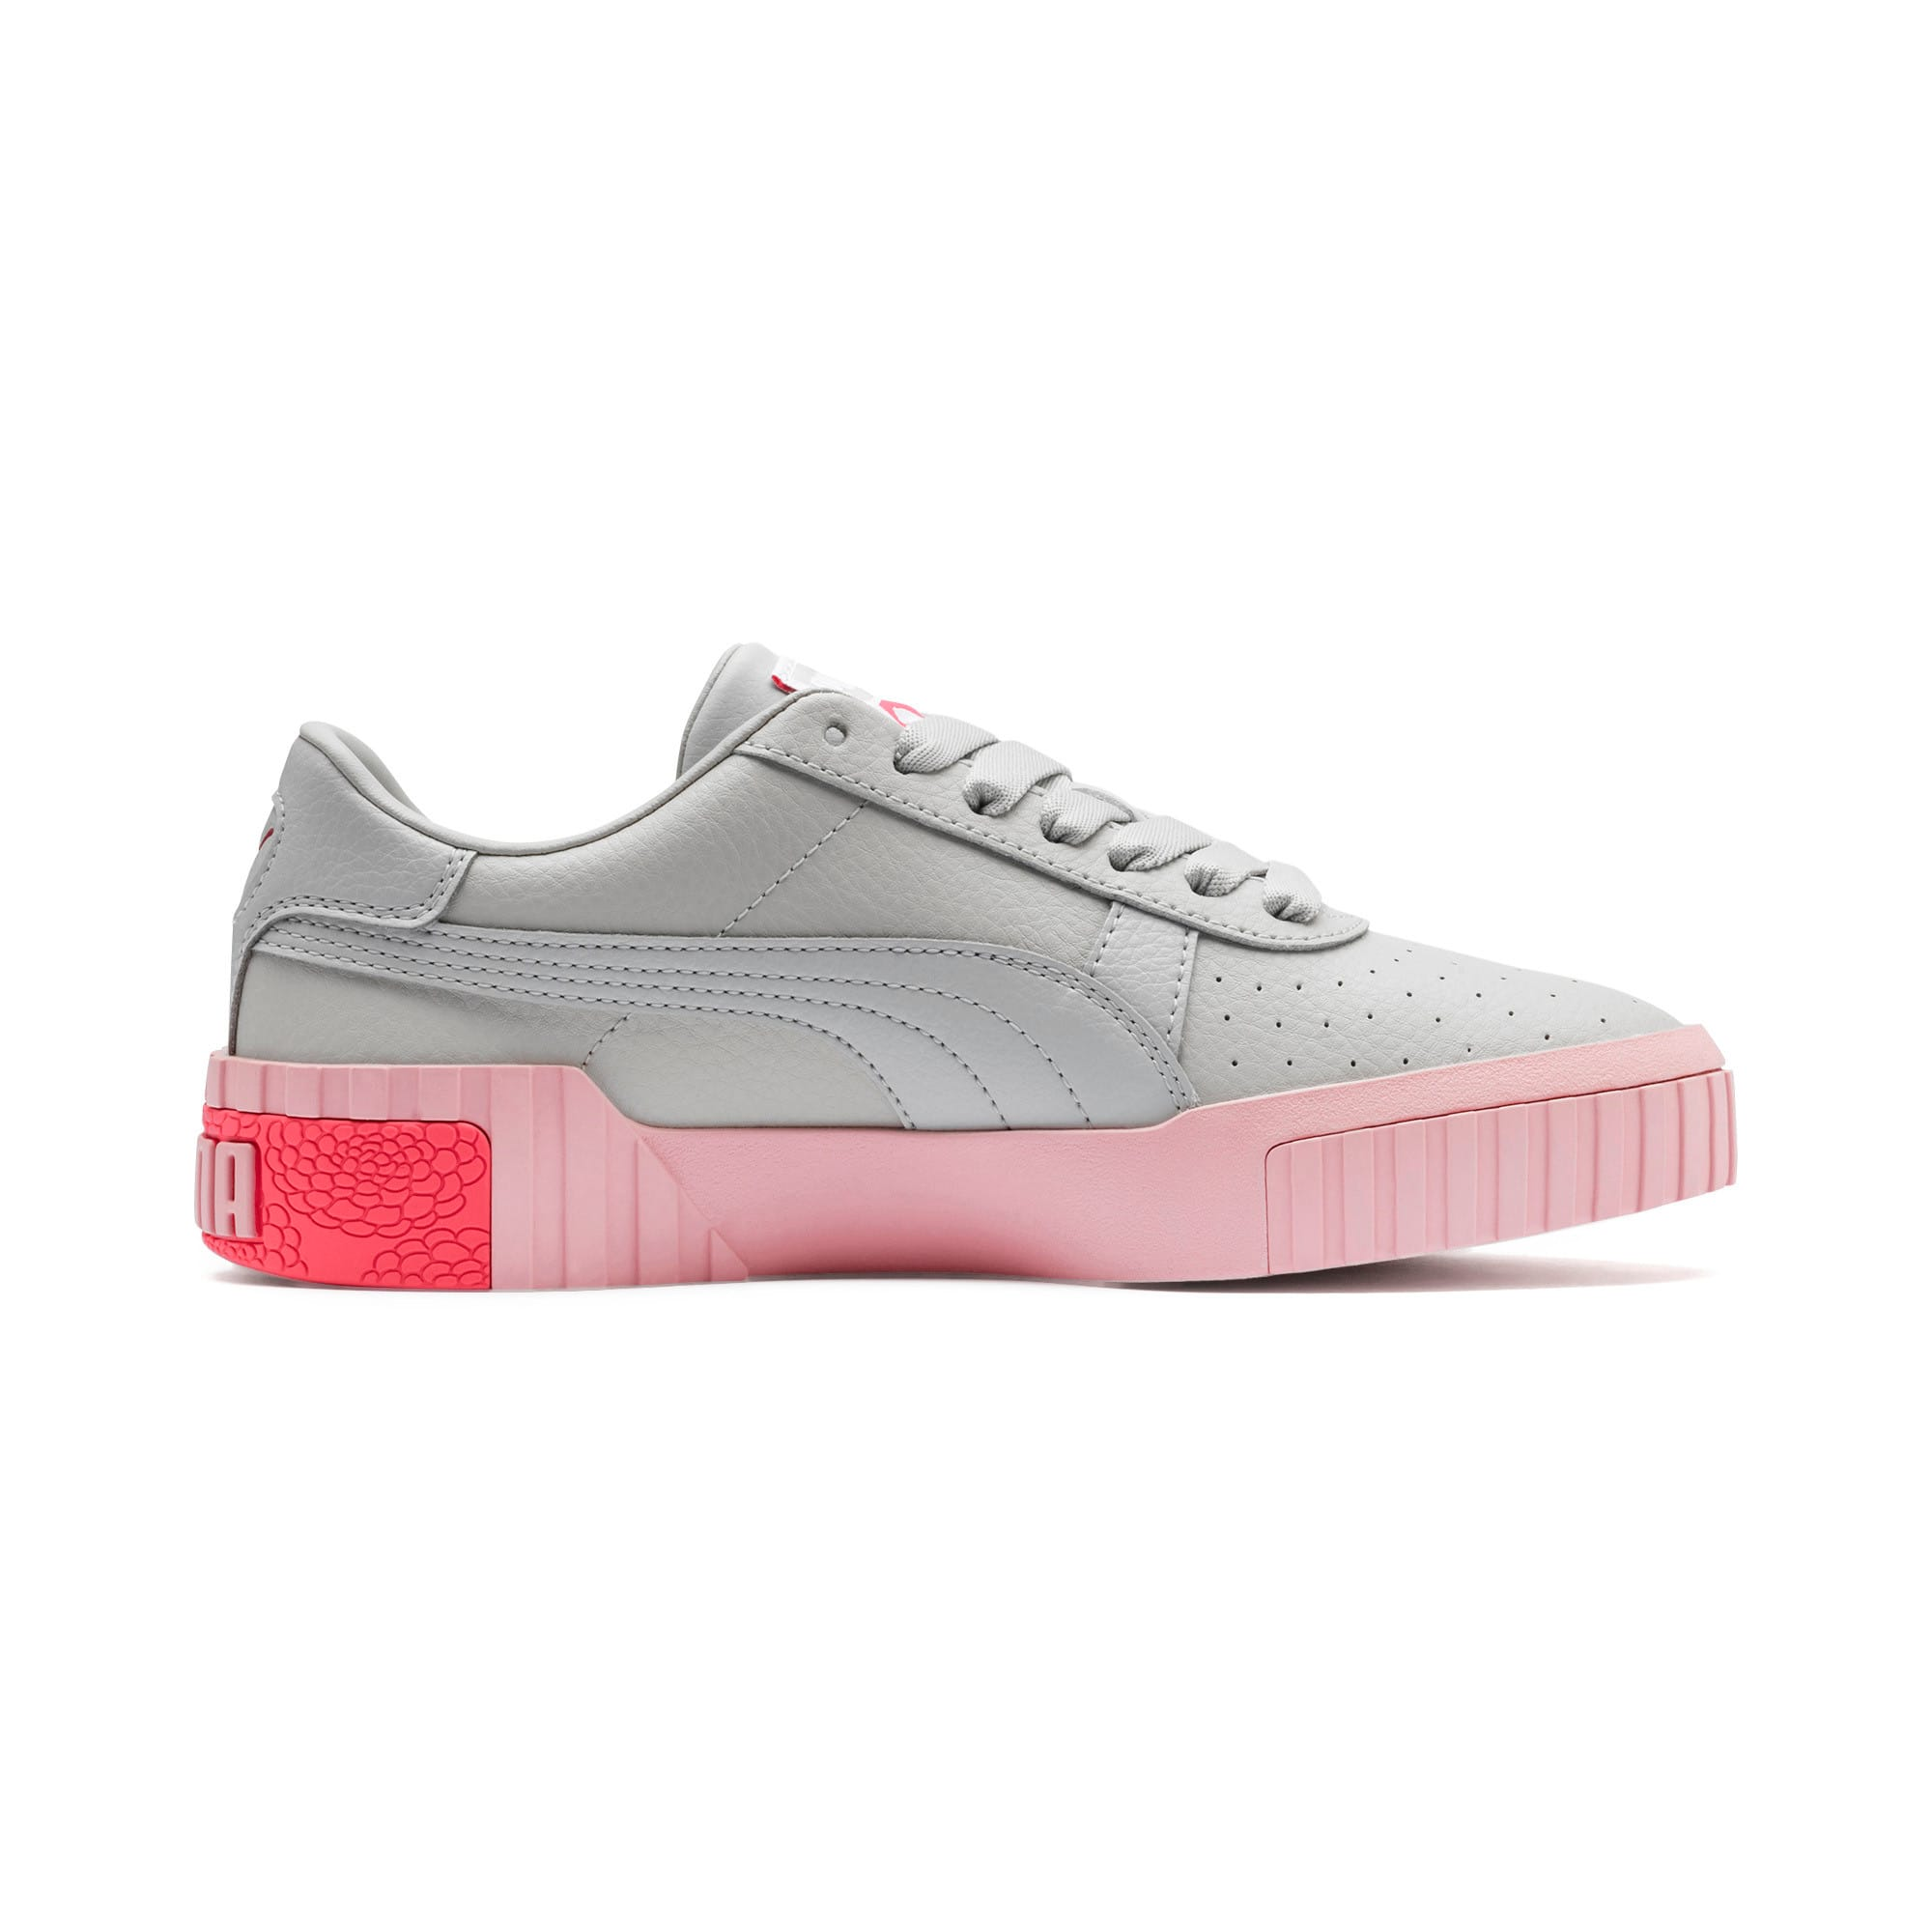 Thumbnail 5 of Cali Youth Trainers, Gray Violet-Calypso Coral, medium